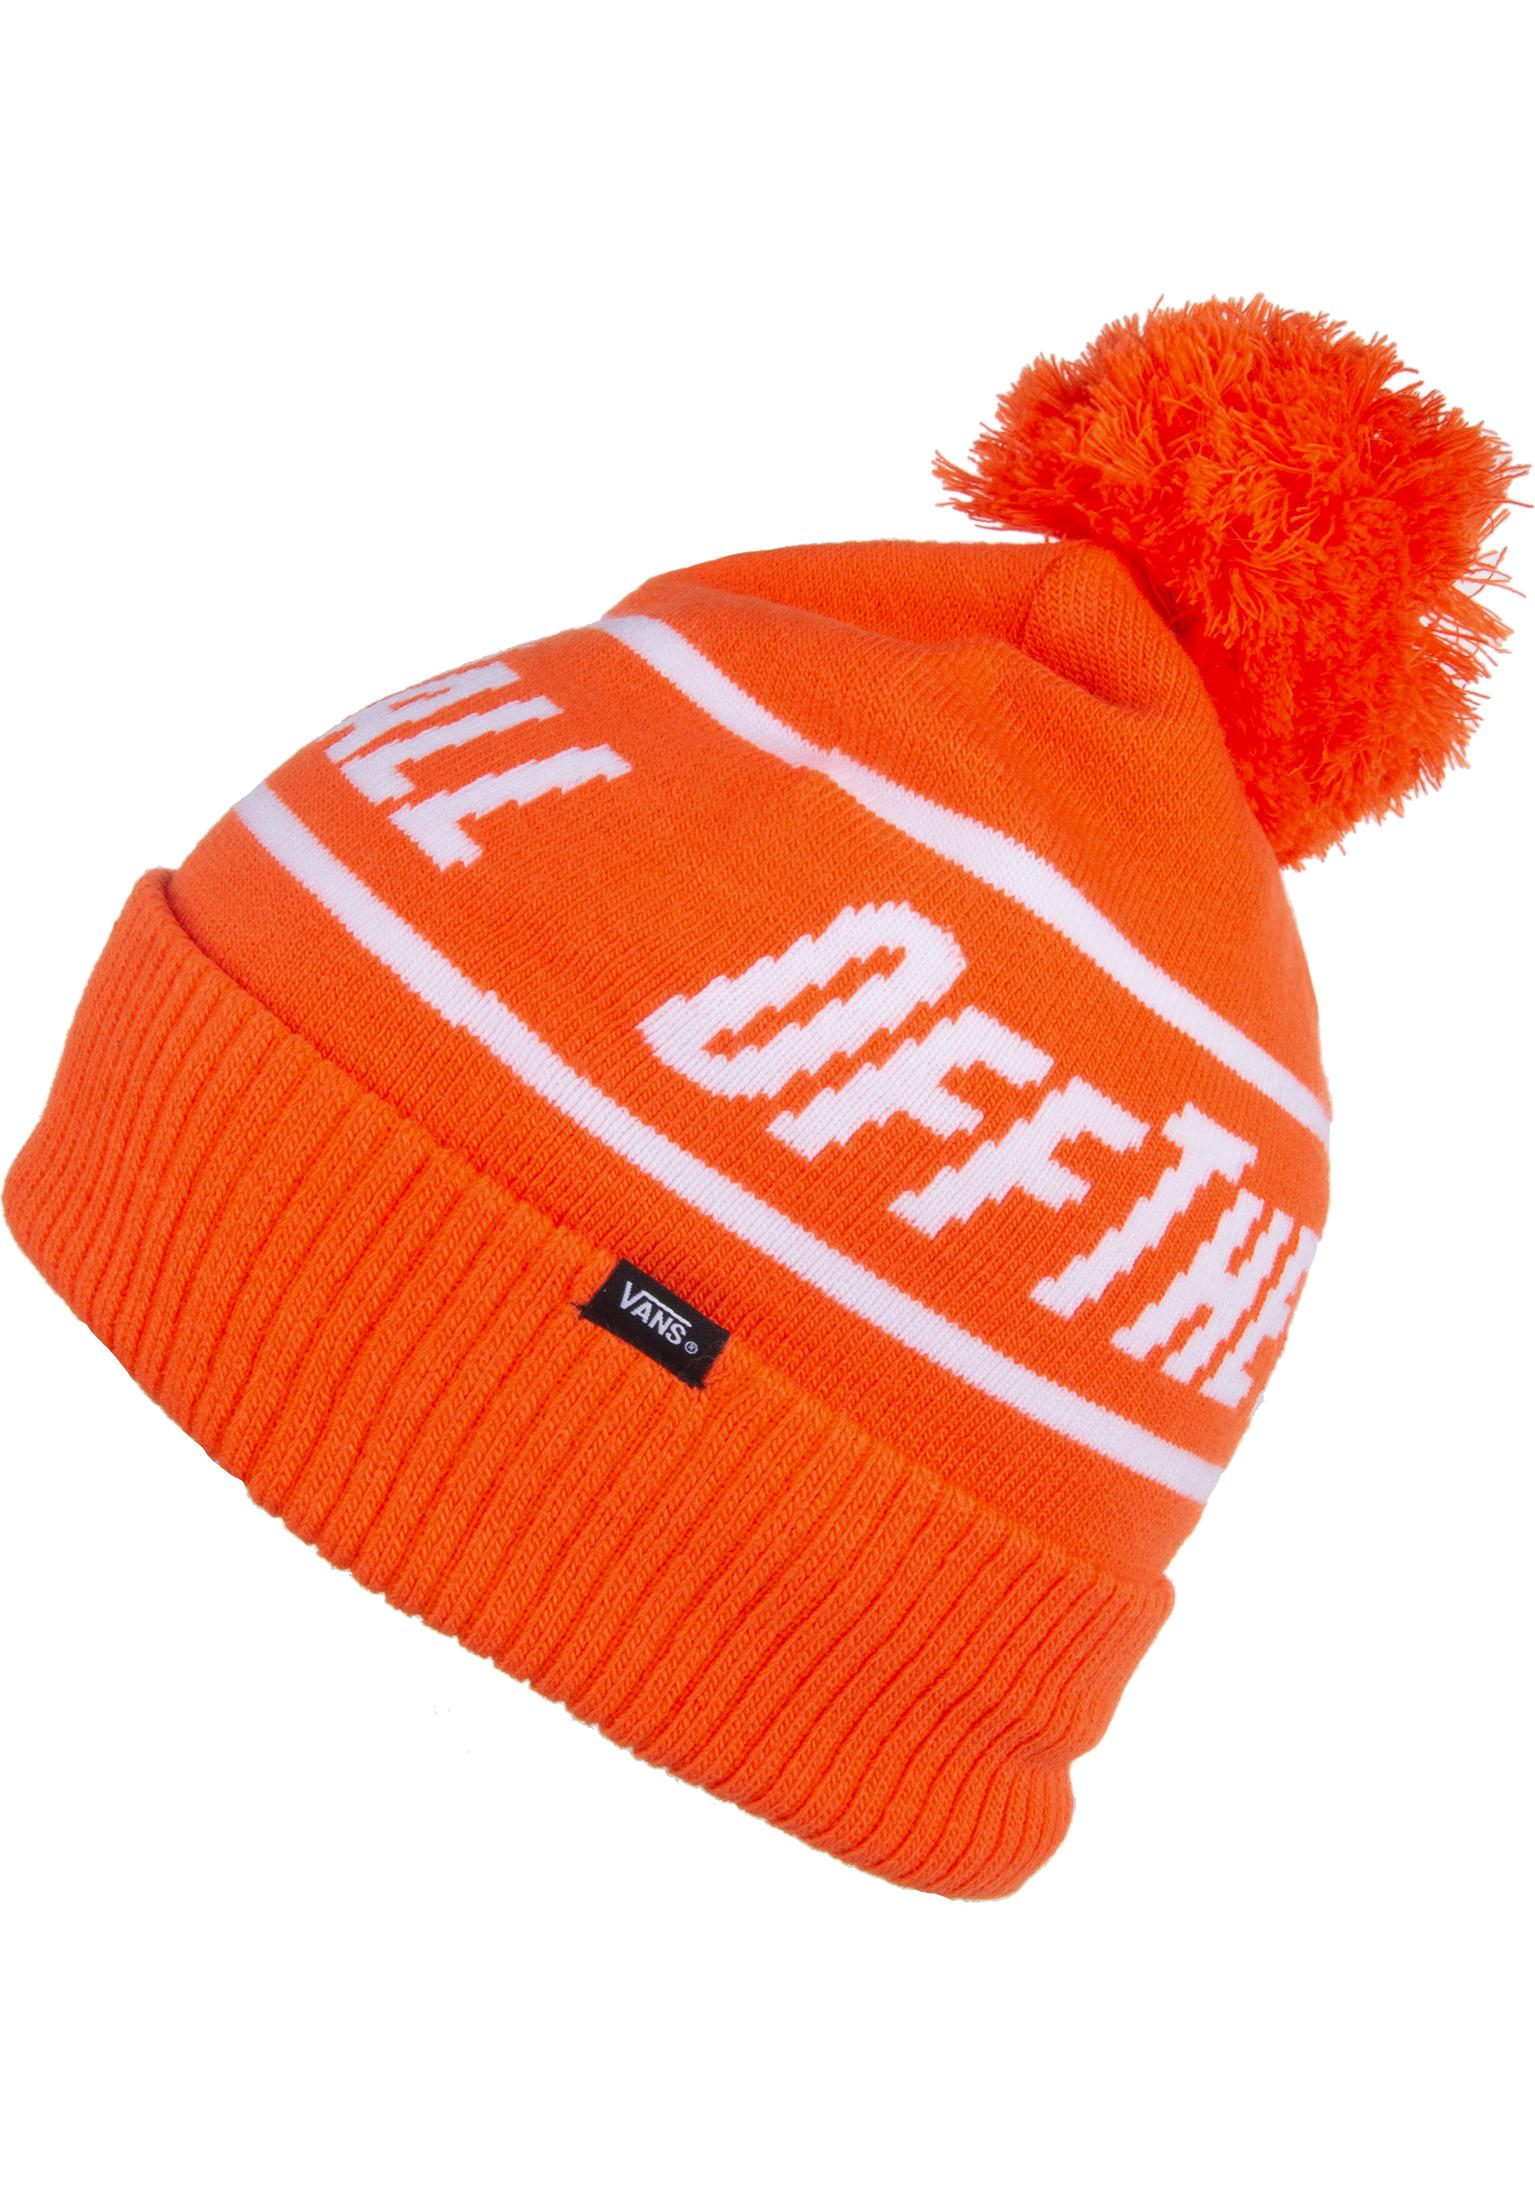 3823281bac7 Off The Wall Pom Vans Beanies in flame for Women